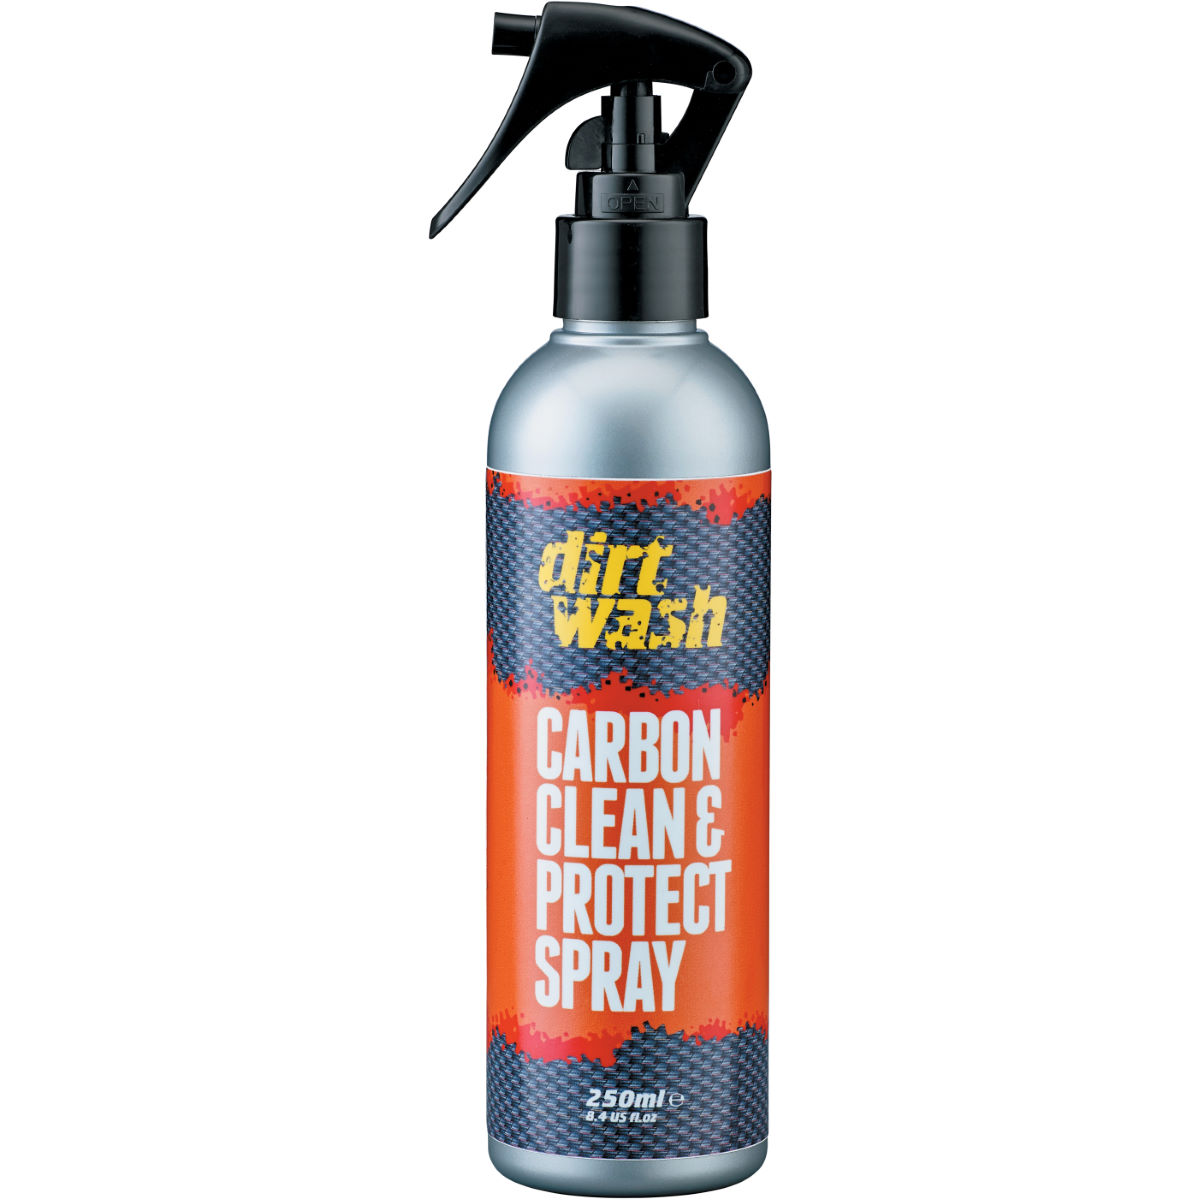 Weldtite Dirtwash Carbon Clean & Protect Spray - Productos de limpieza